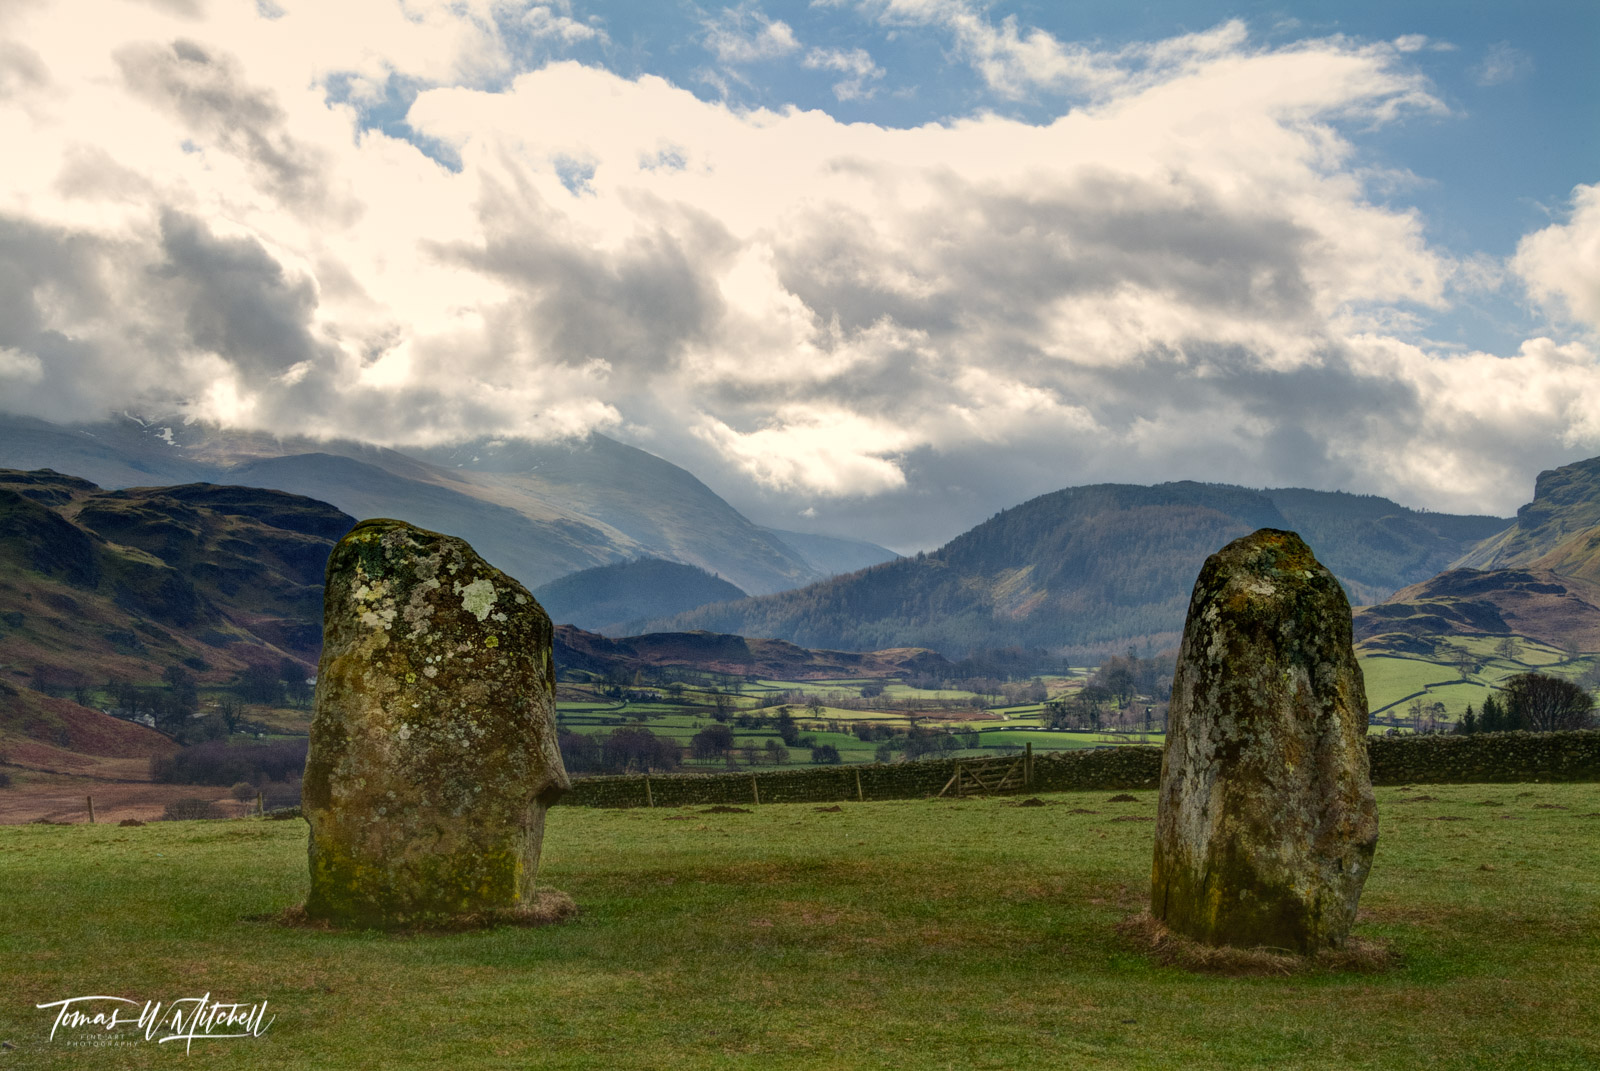 limited edition, museum grade, fine art, prints, photograph, castlerigg, stone circle, england, cumbria, ancient, stones, fence, rock wall, farmland, mountains, spiritual, green, grass, spring, moss, , photo